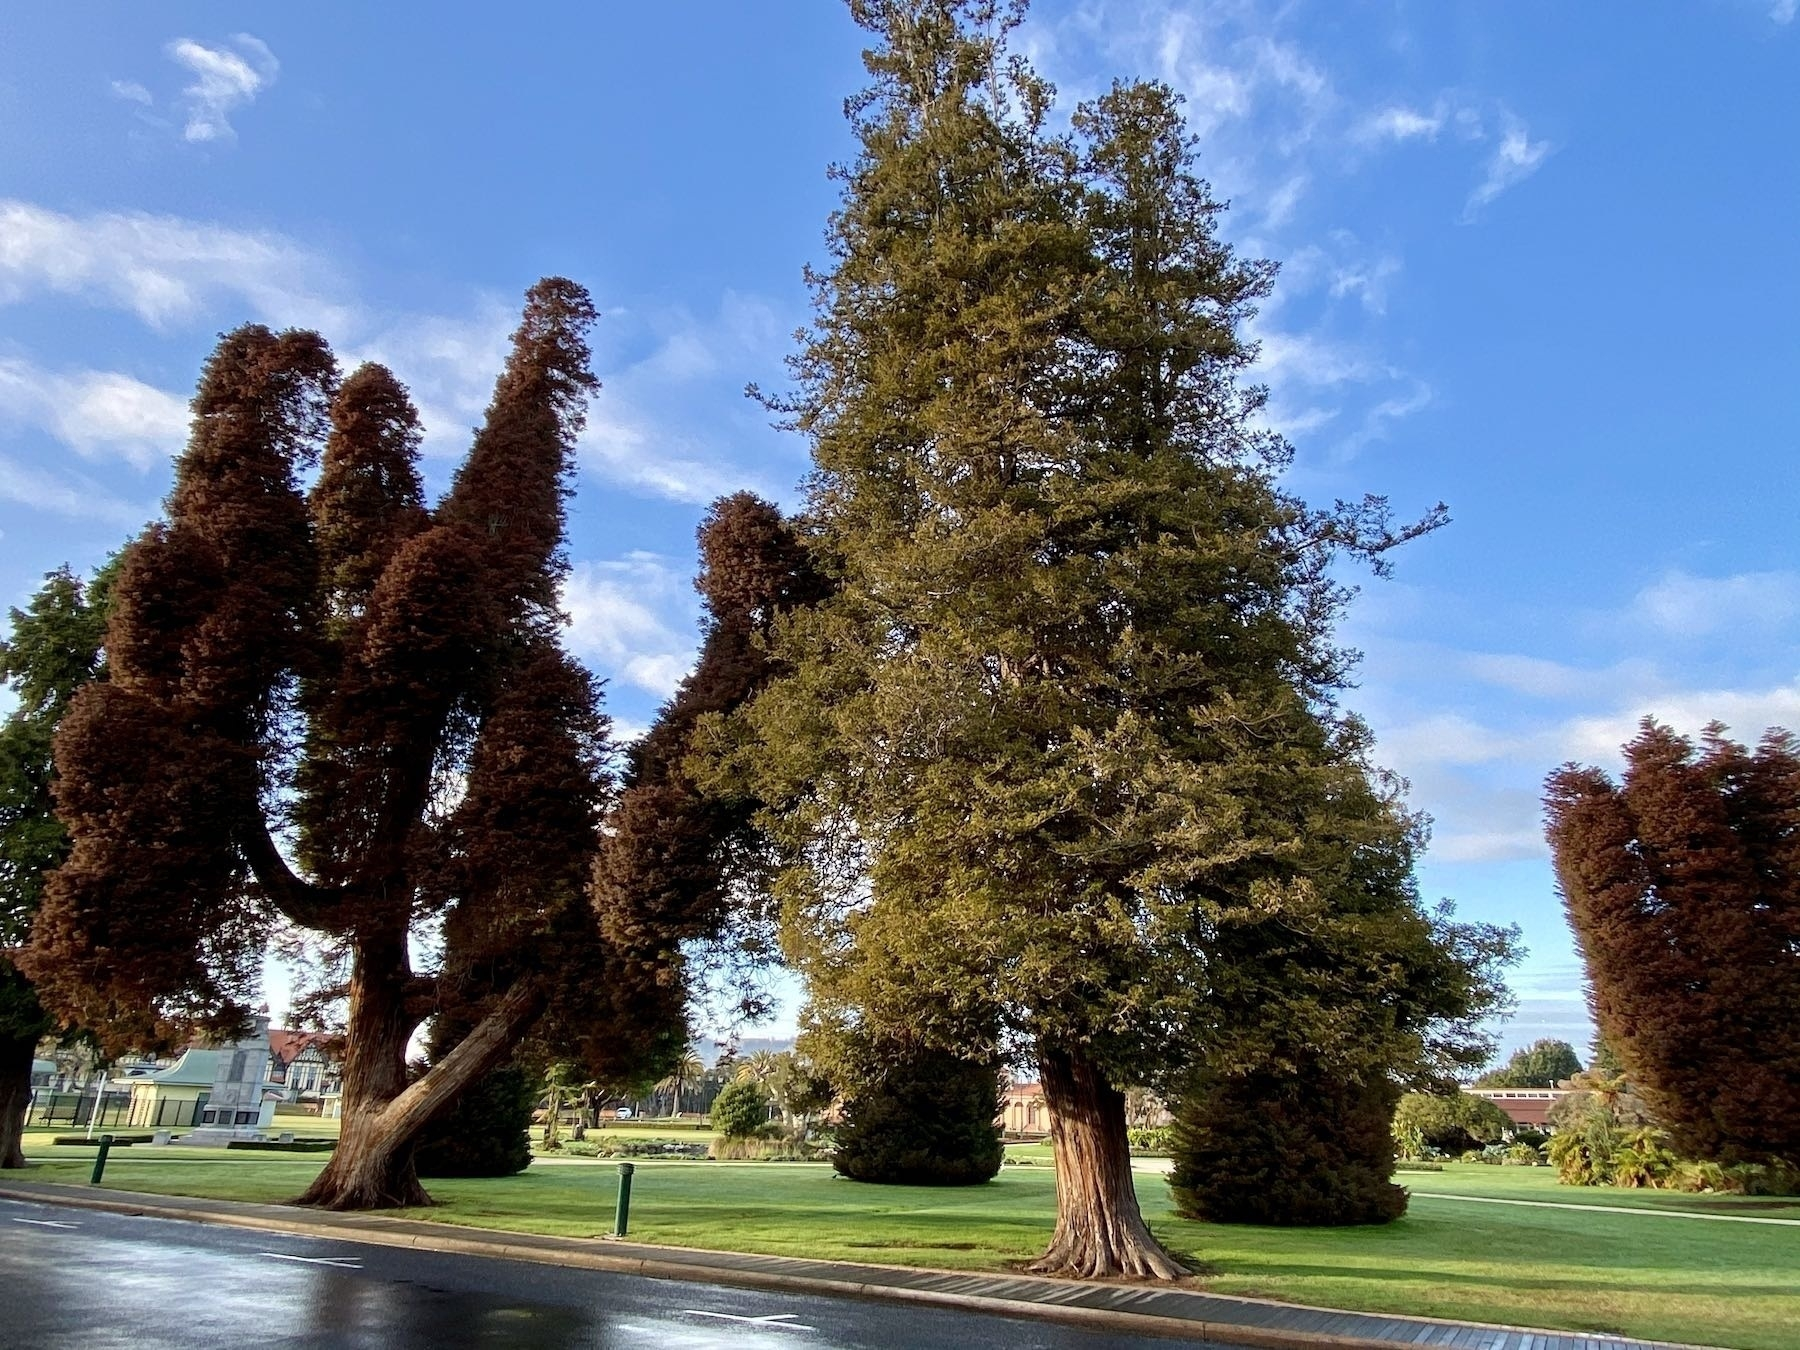 Trees with interesting shapes.